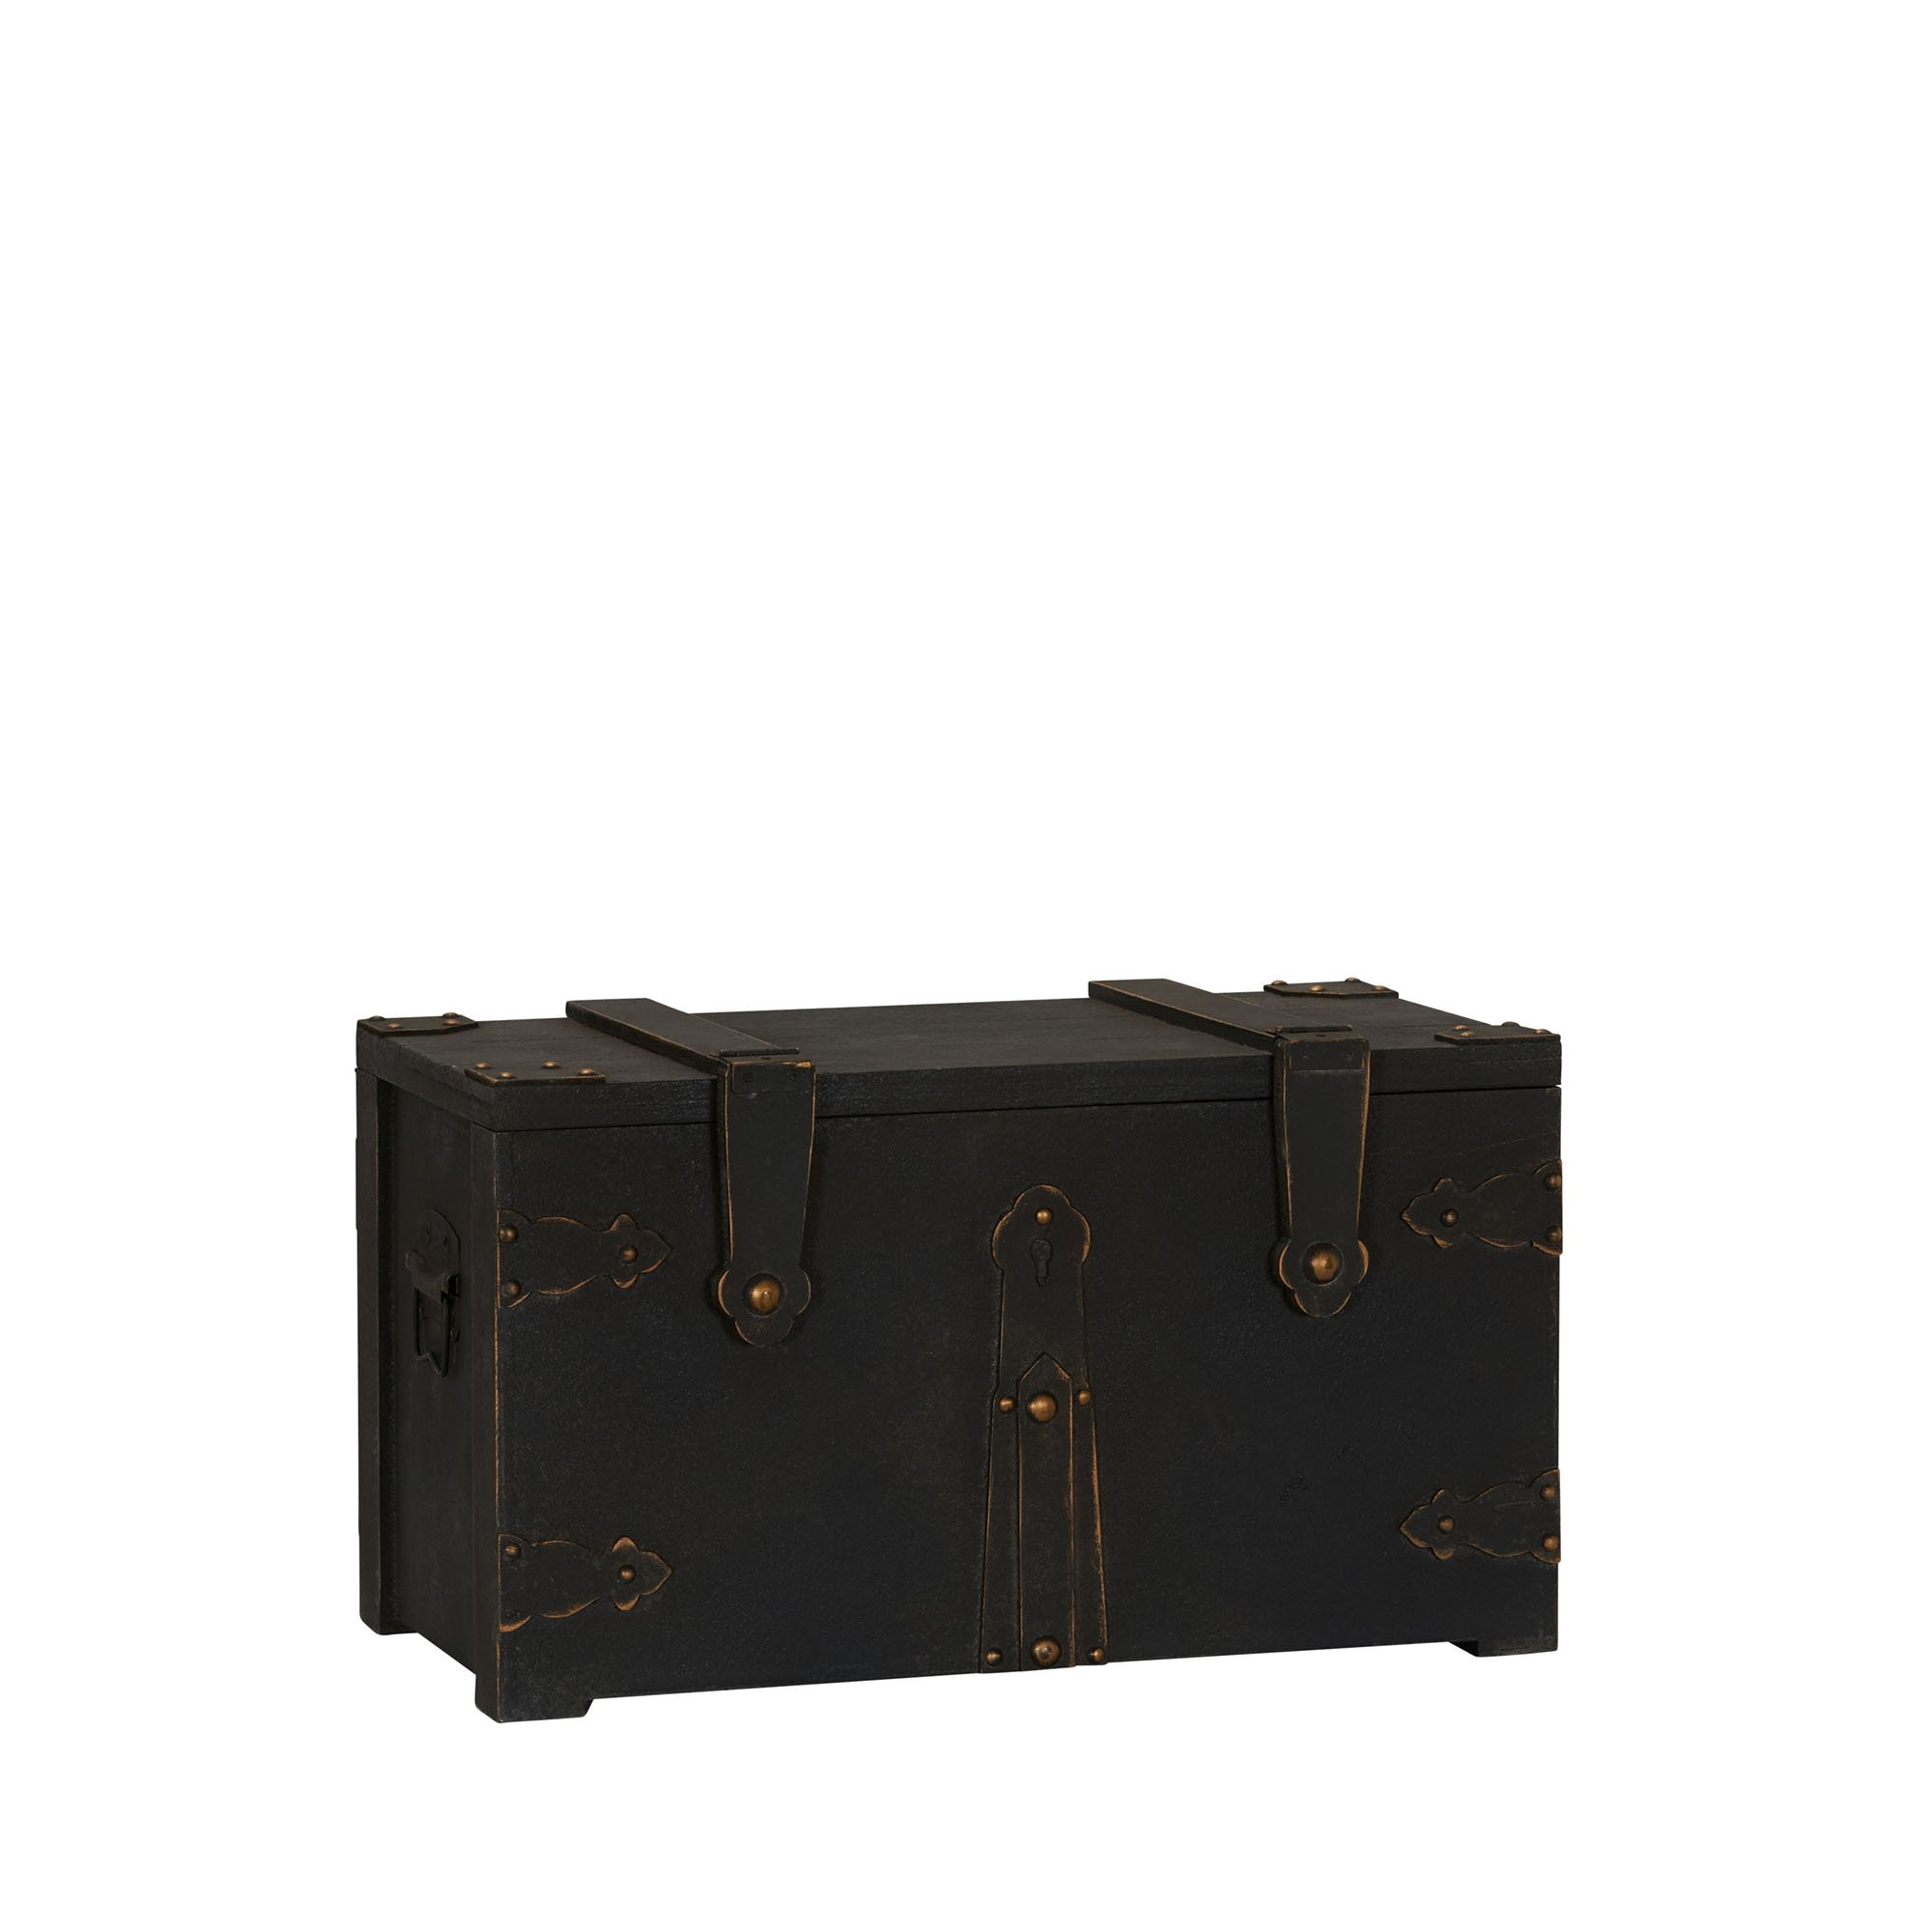 Household Essentials G.O.T. Wooden Trunk Standard, Small, Black